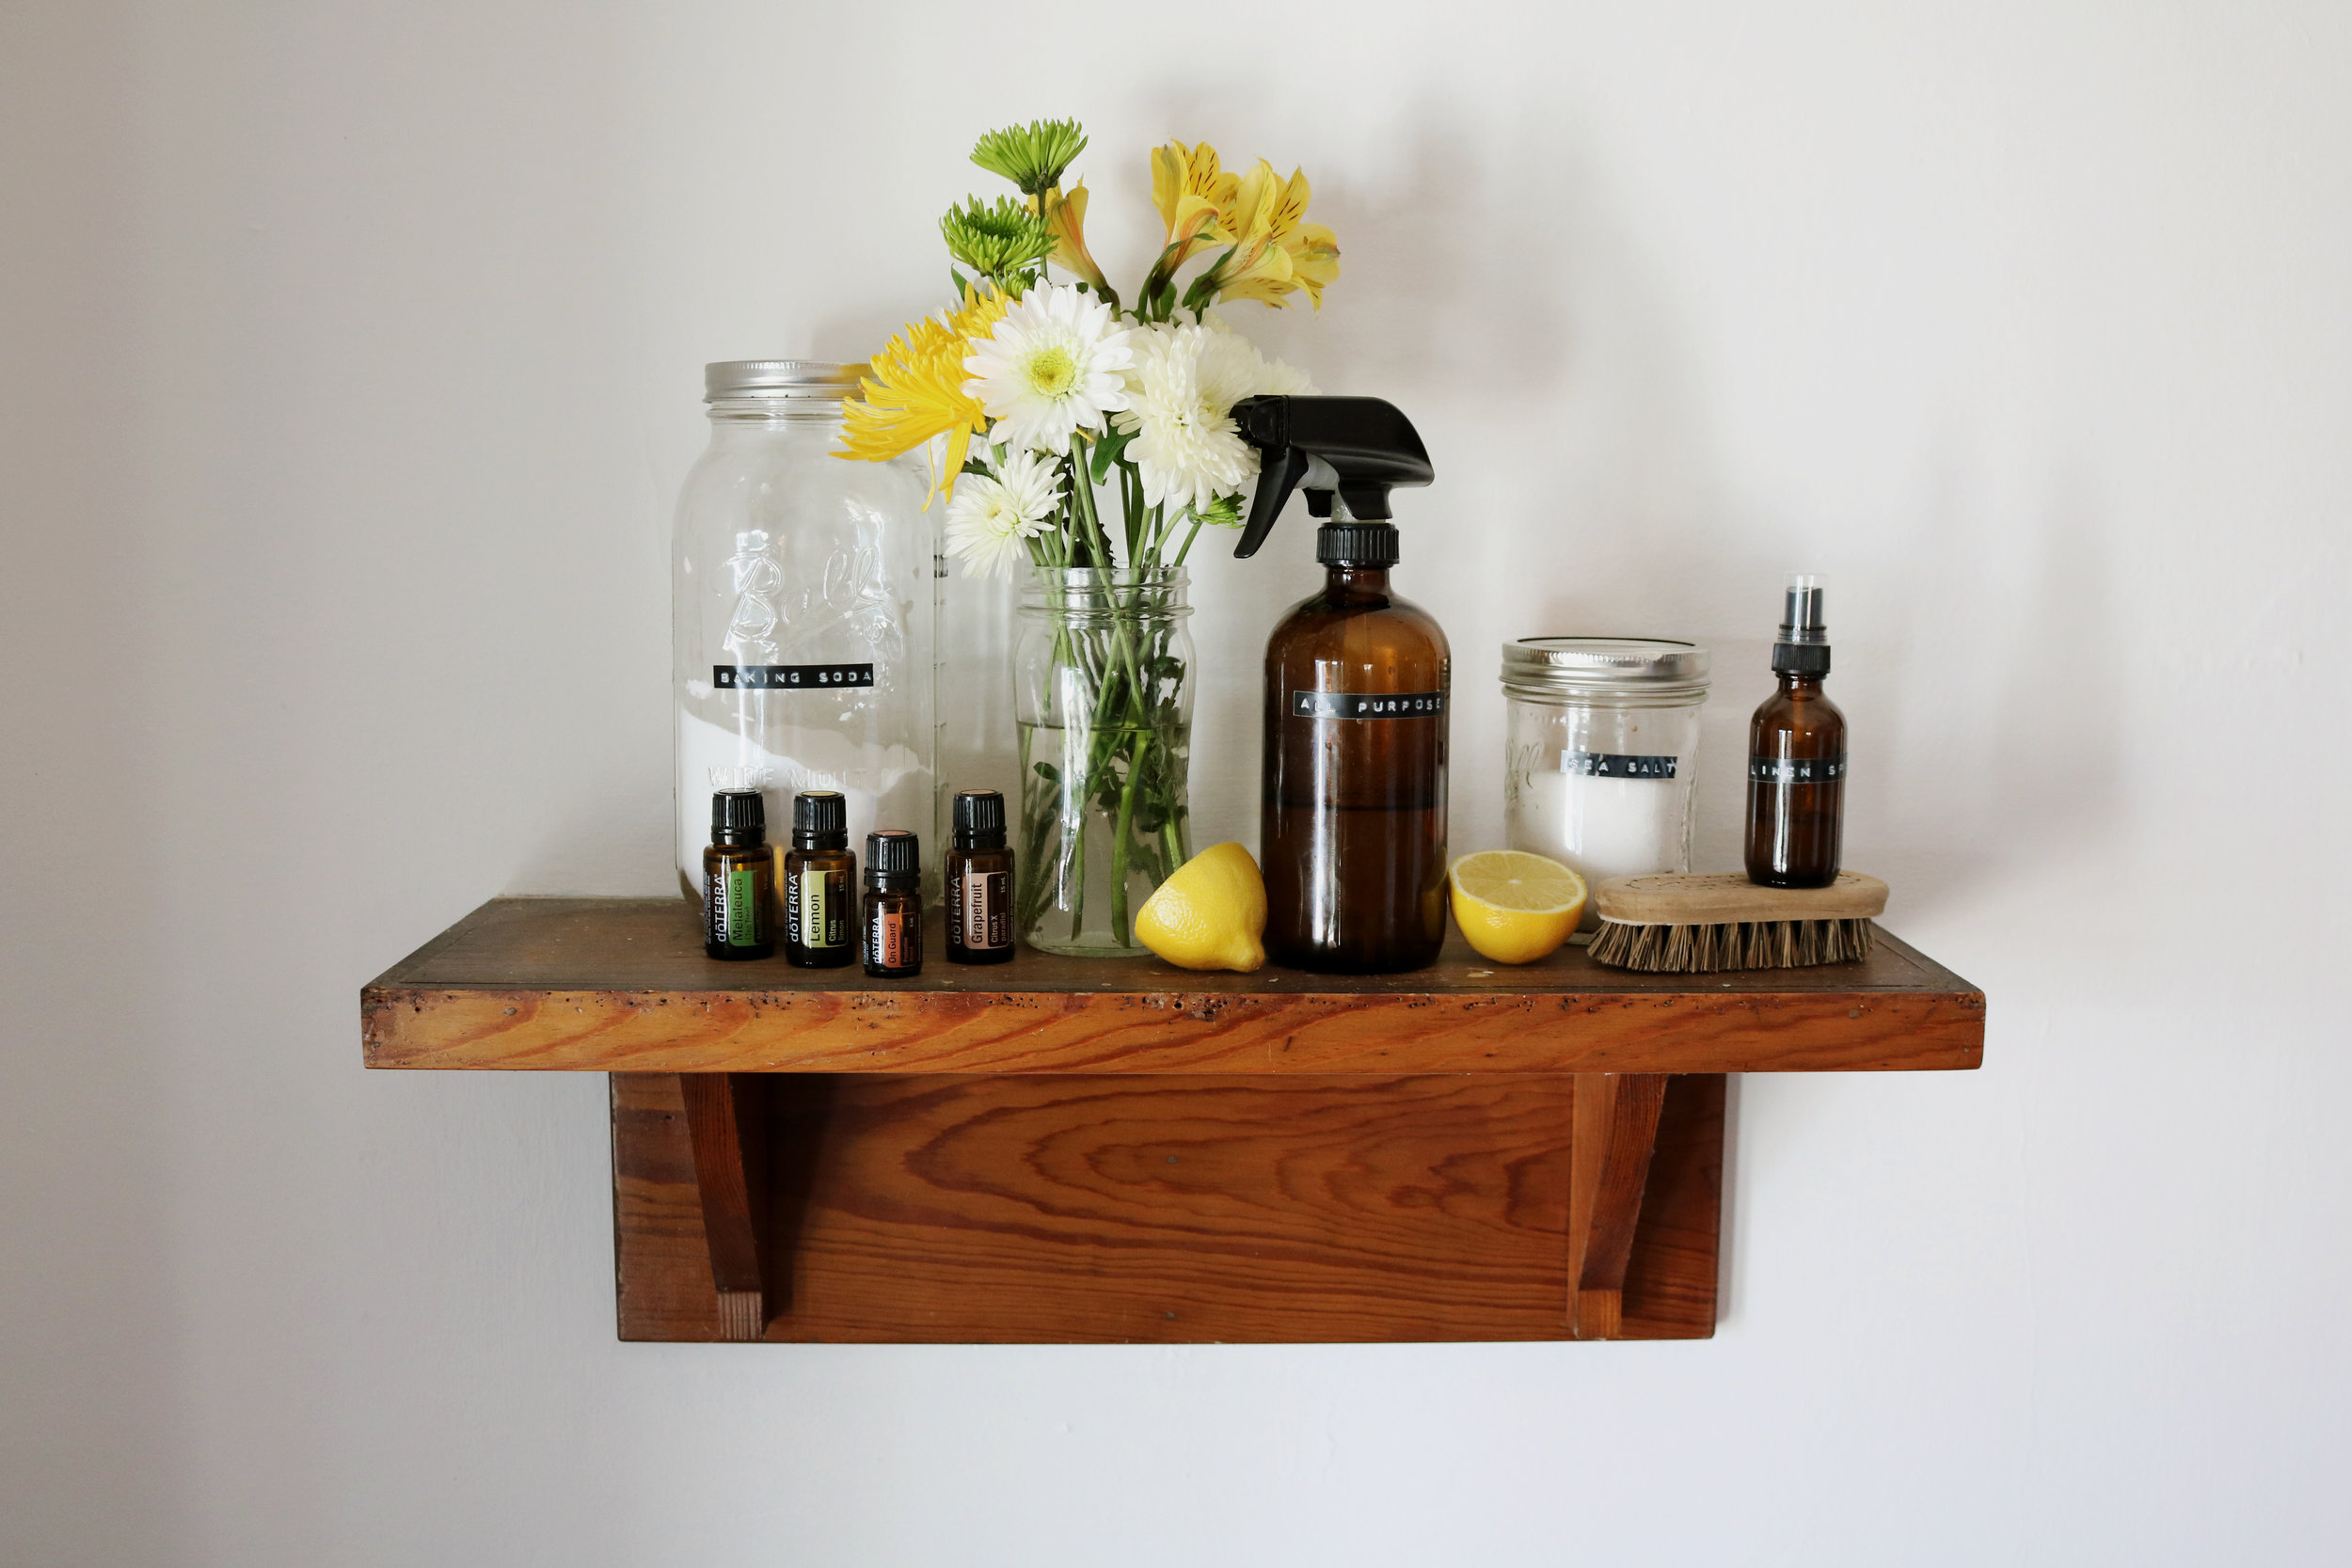 5 Natural Cleaning Recipes for Your Bathroom - Under A Tin Roof Blog